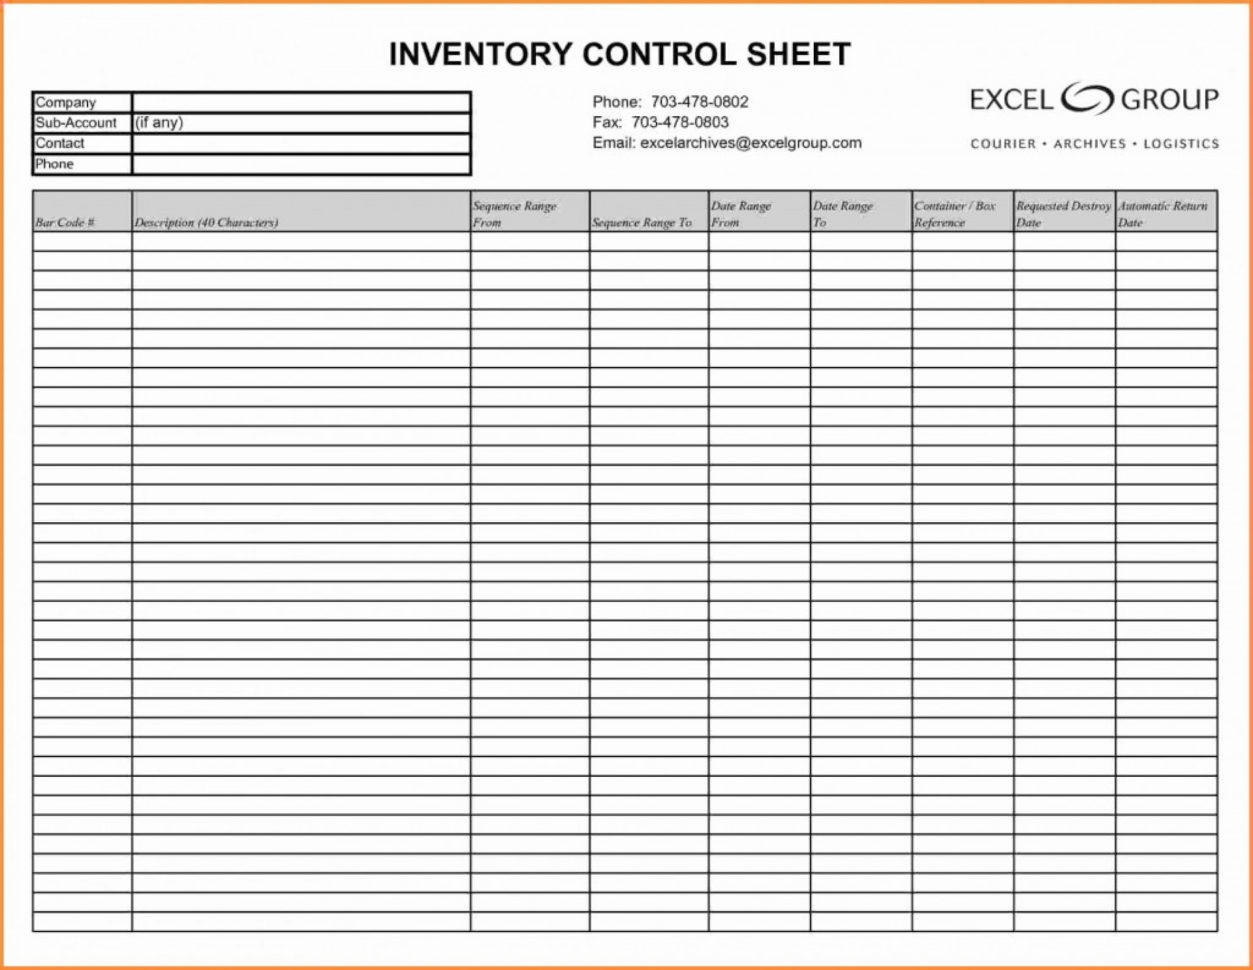 Probate Accounting Spreadsheet With Regard To 004 Probate Accounting Template Excel Ideas Awesome Spreadsheet